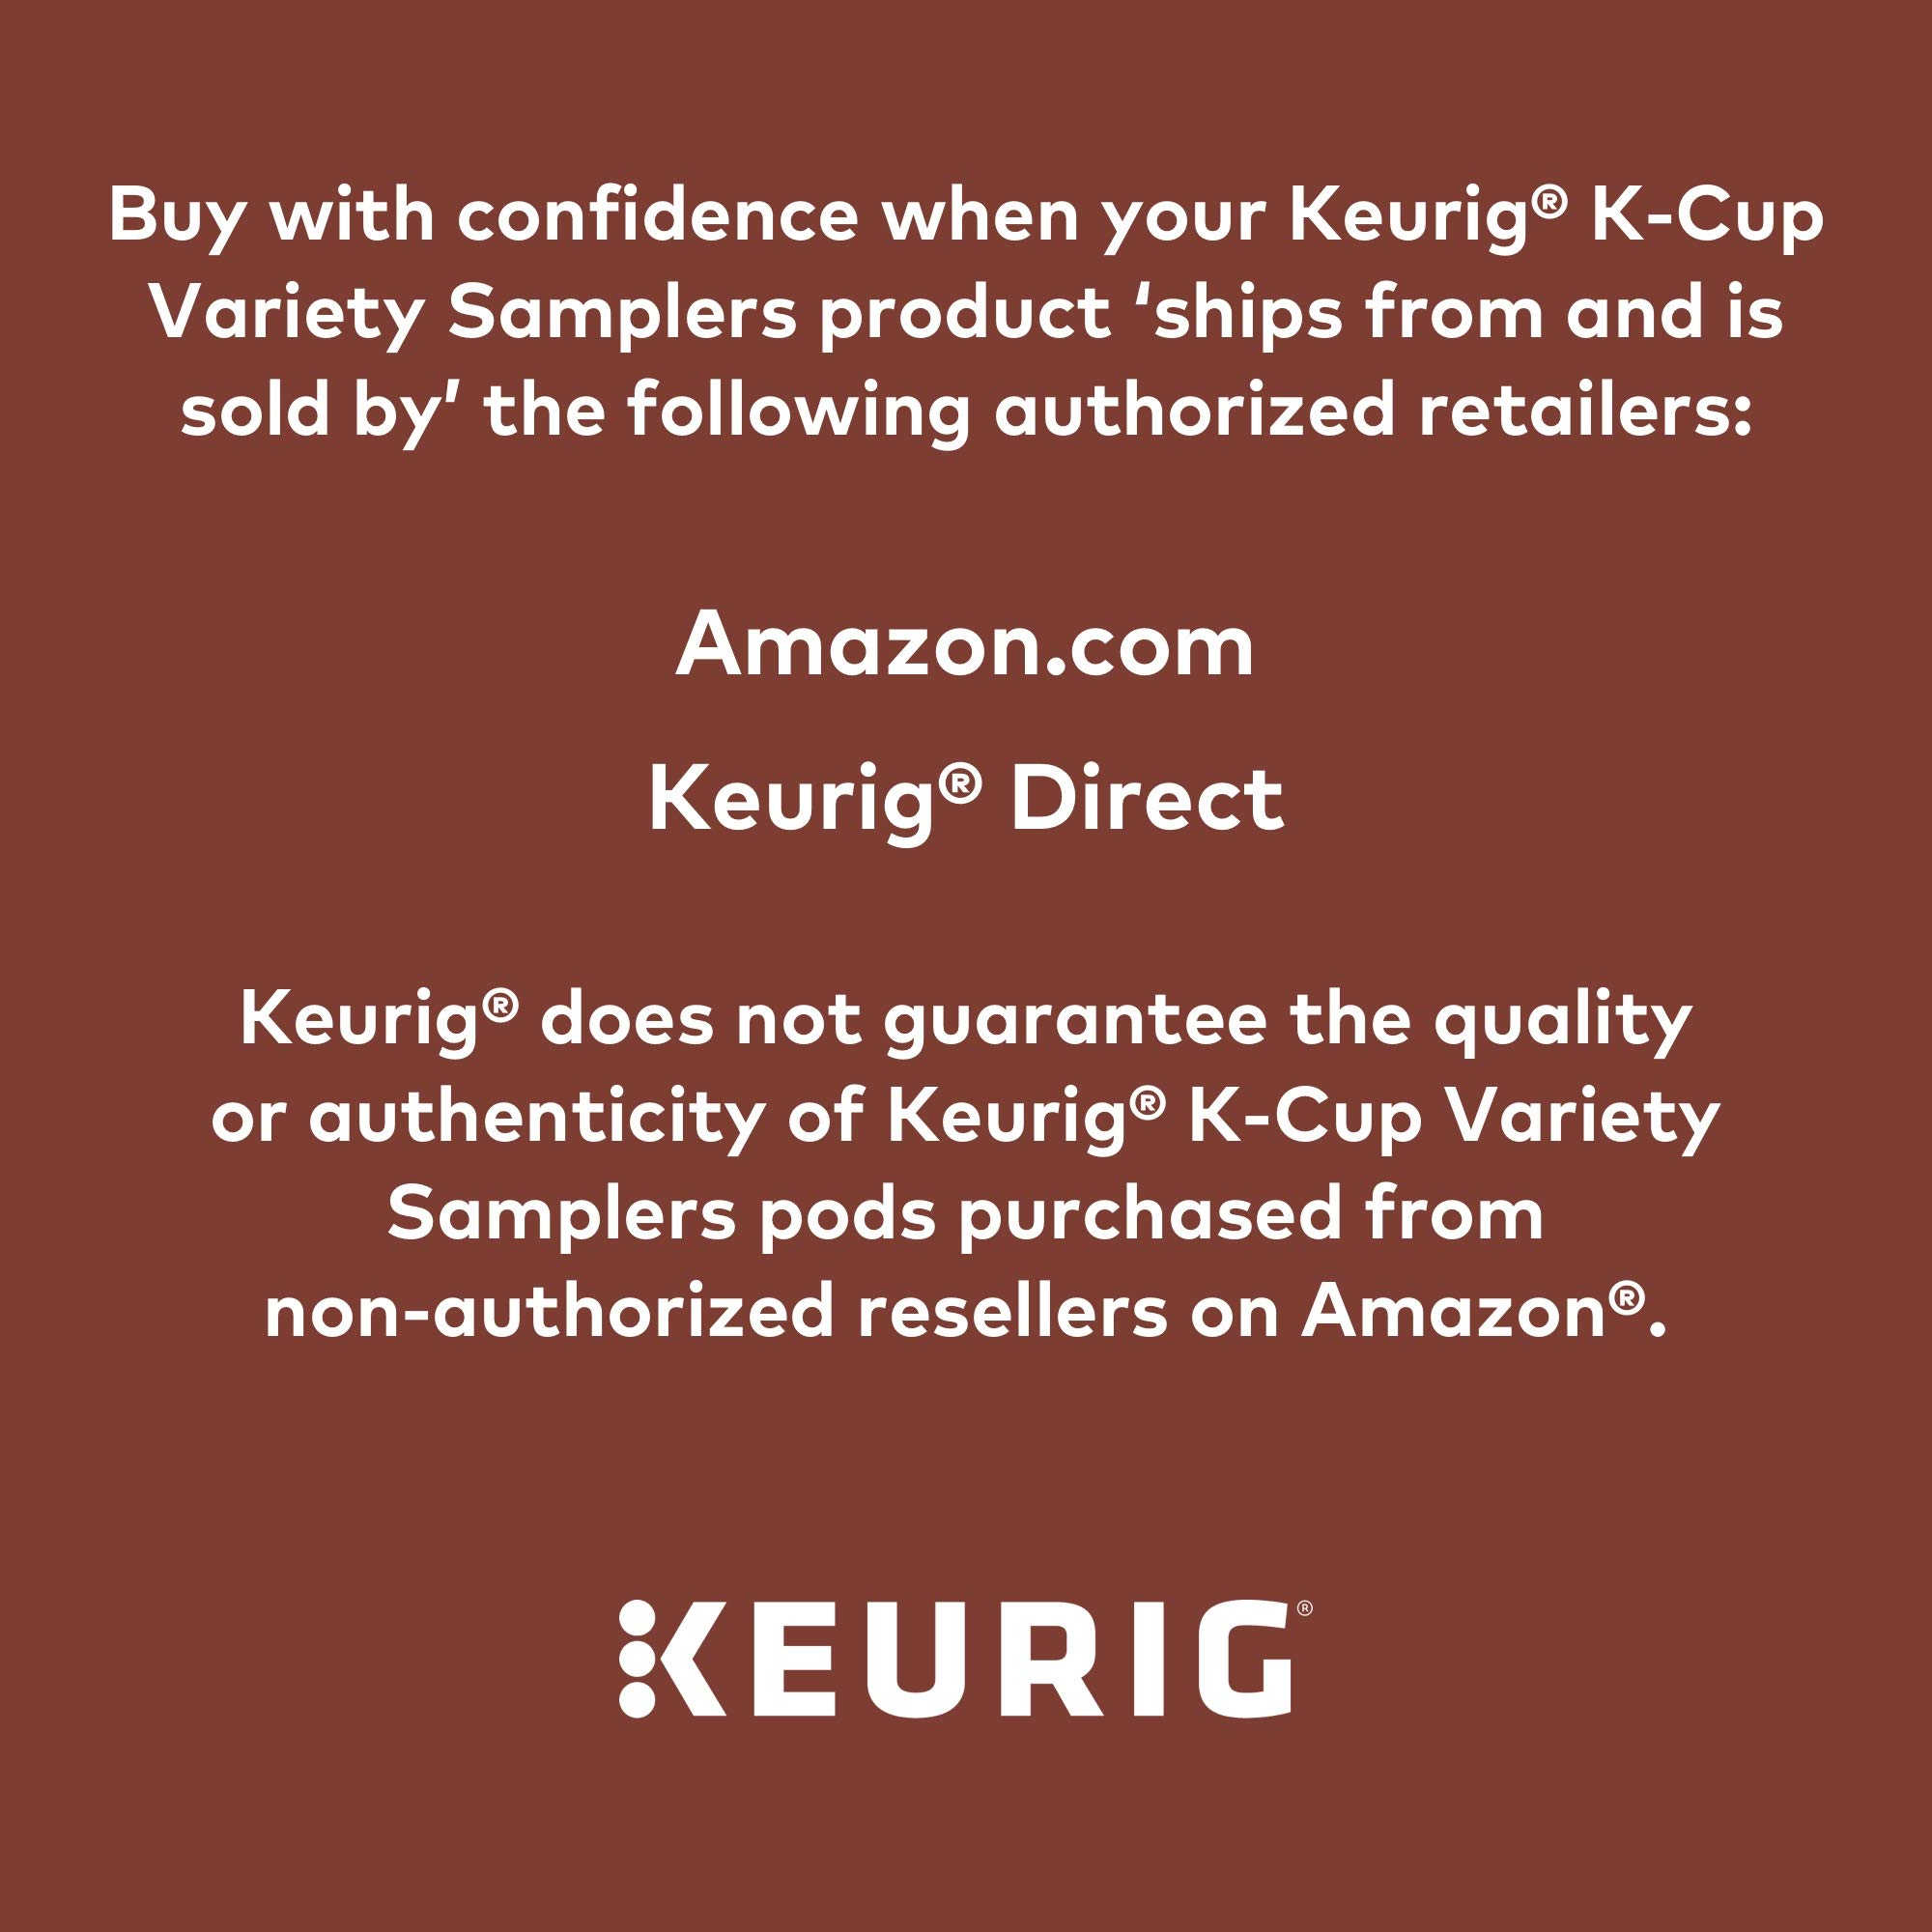 Keurig Coffee Lovers' Collection Variety Pack, Single Serve K-Cup Pods, Compatible with all Keurig 1.0/Classic, 2.0 and K-Café Coffee Makers, 100 Count by Variety (Image #8)